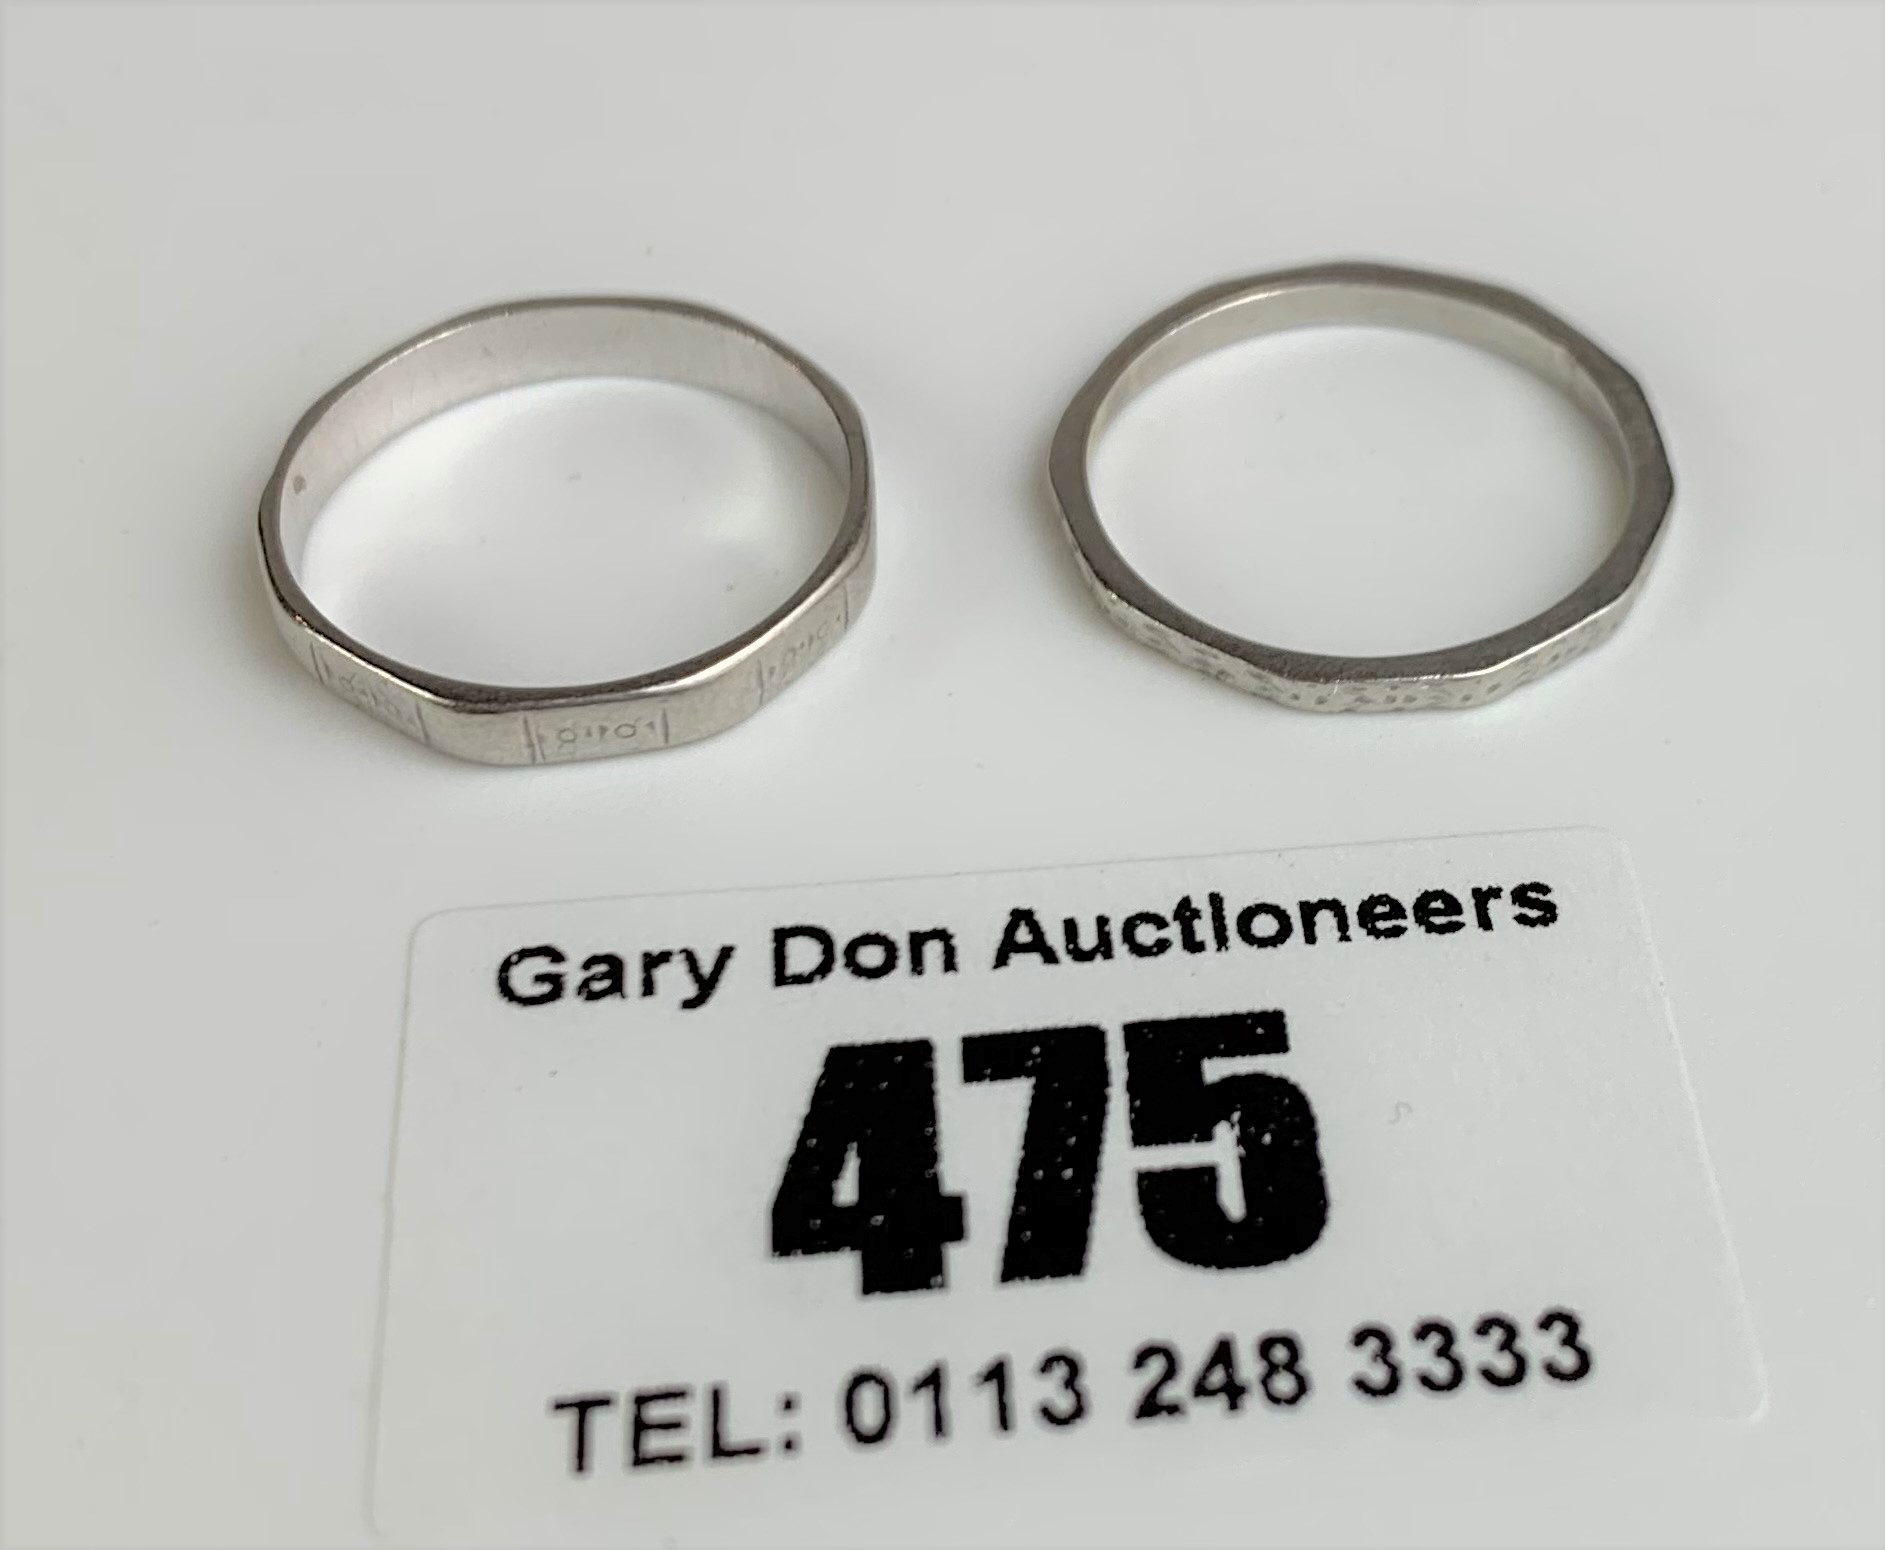 2 platinum wedding bands, sizes L and M, total w: 4.8 gms